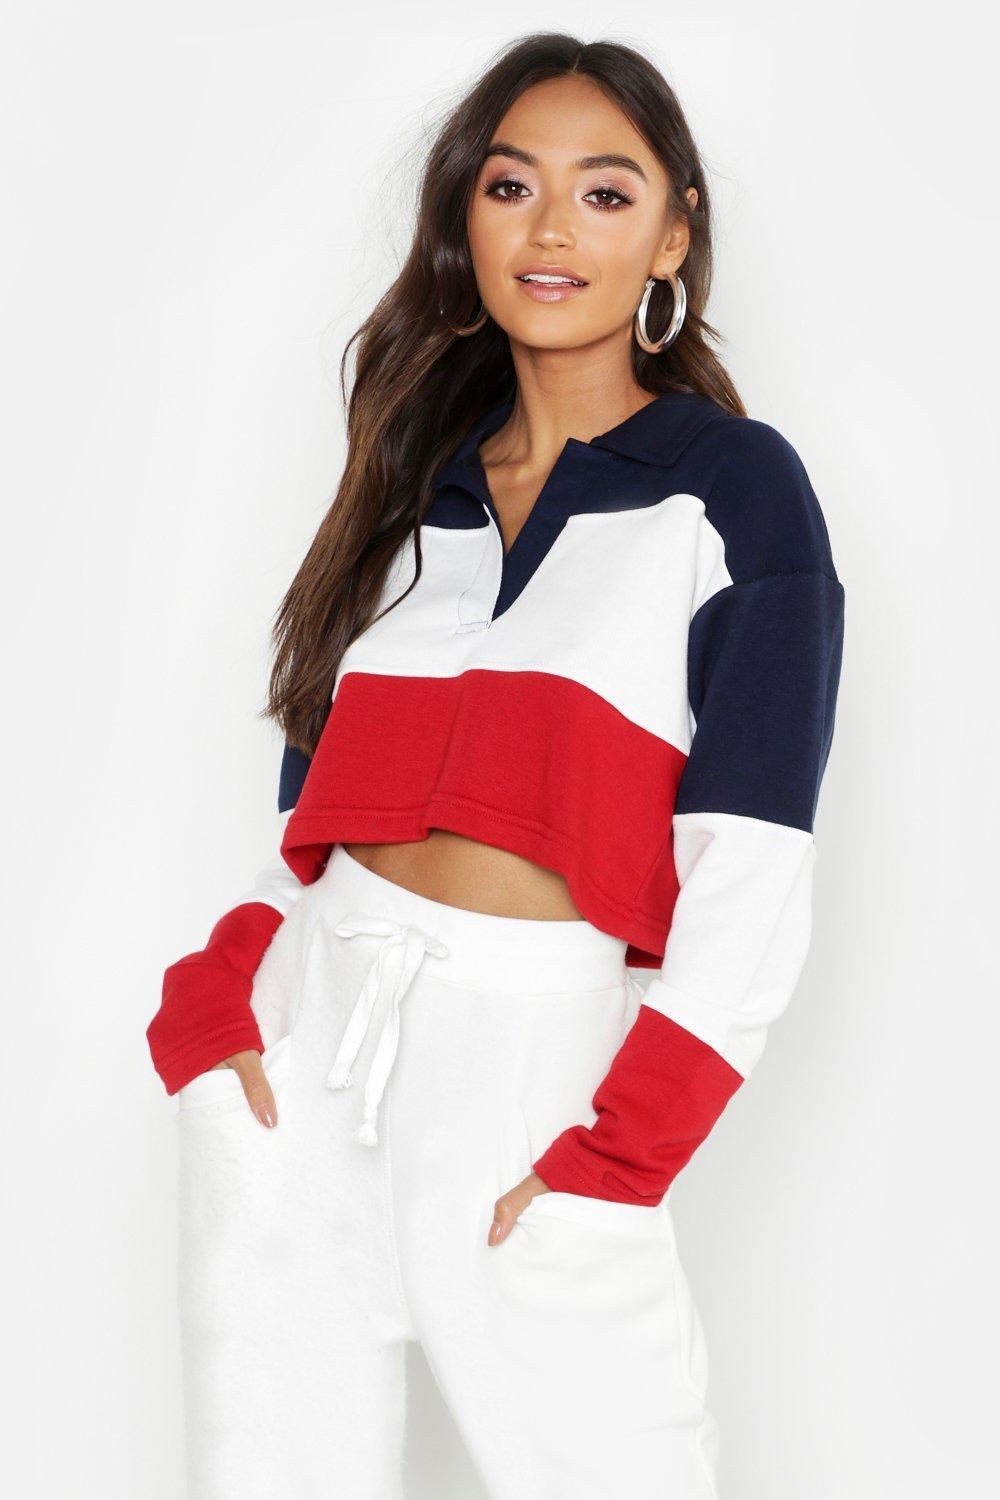 51162d96c1cc8 Lyst - Boohoo Petite Colour Block Rugby Crop Sweat Top in Red - Save 40%